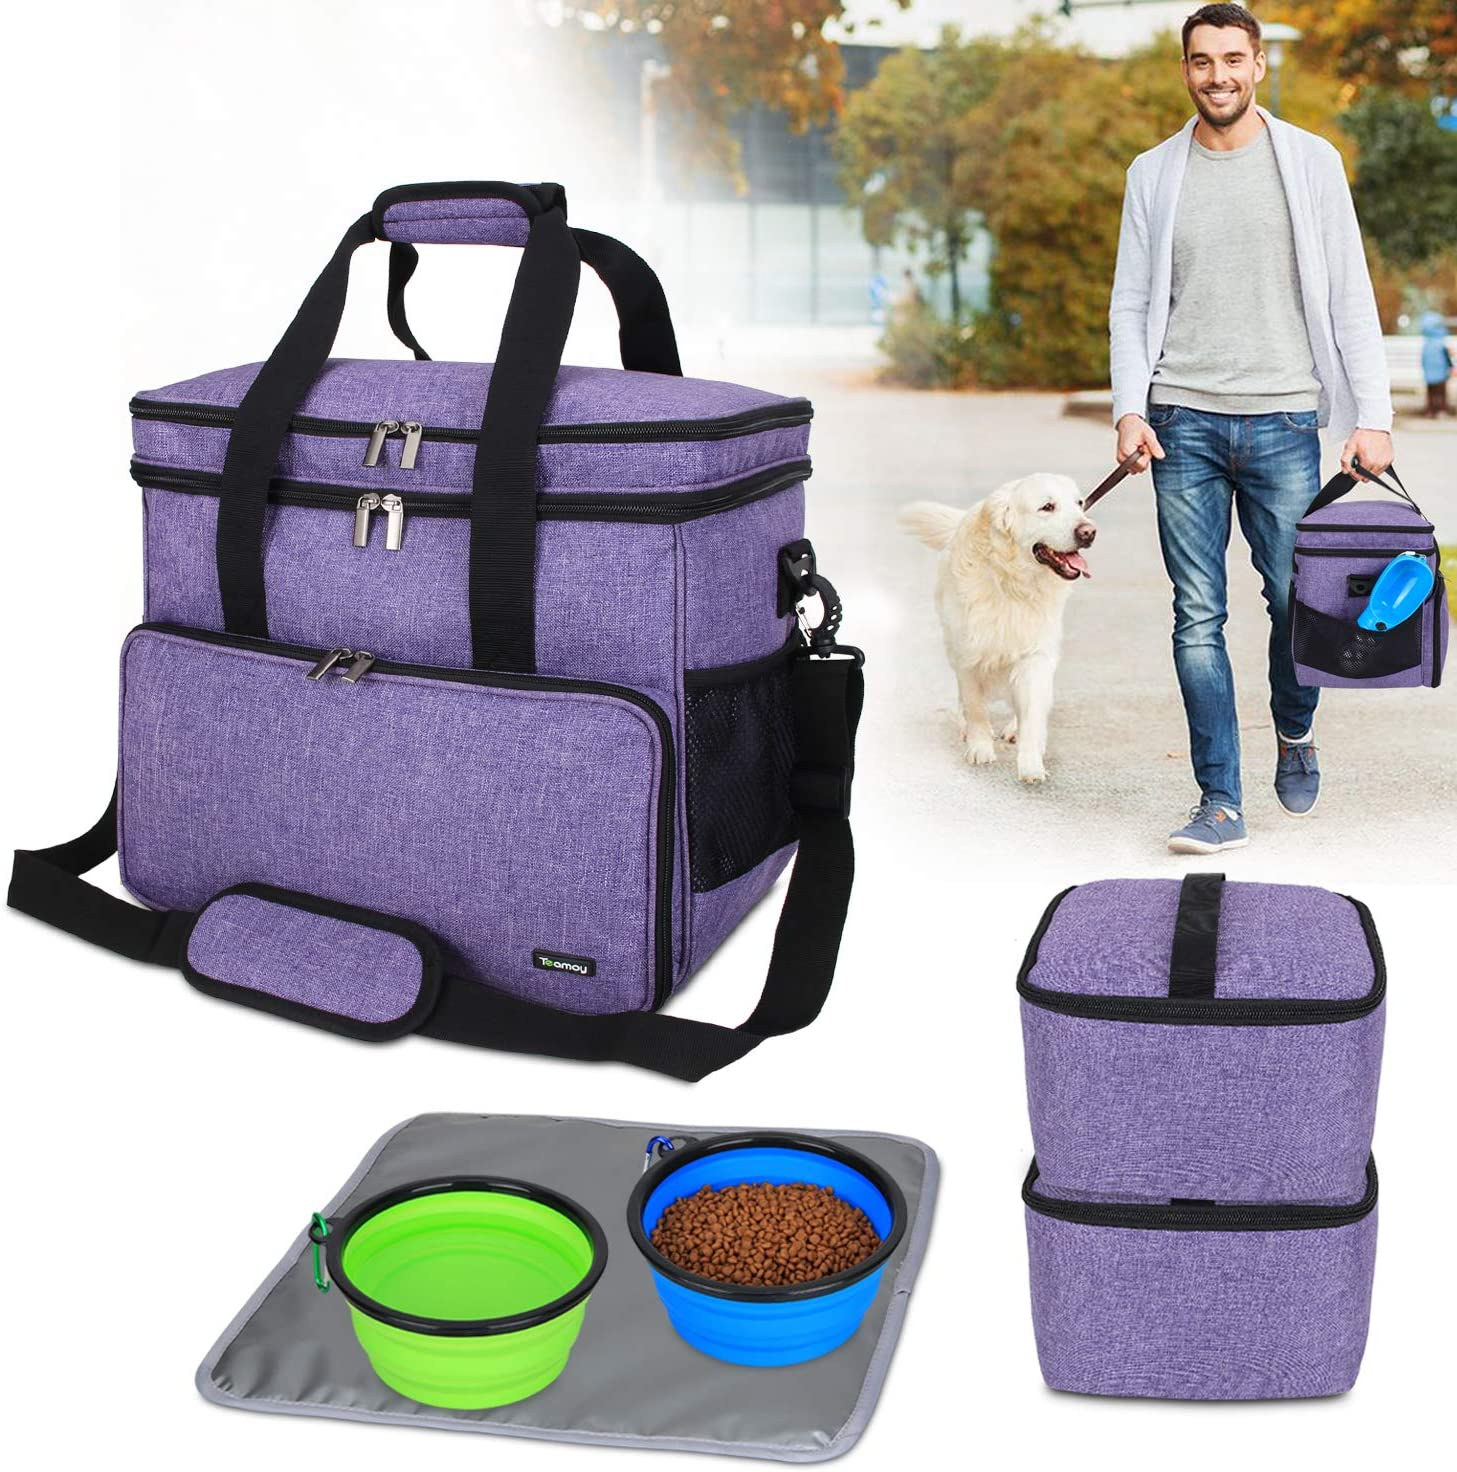 Teamoy Double Layer Dog Travel Bag with 2 Silicone Collapsible Bowls, 2 Food Carriers, 1 Water-Resistant Placemat, Pet Supplies Weekend Tote Organizer